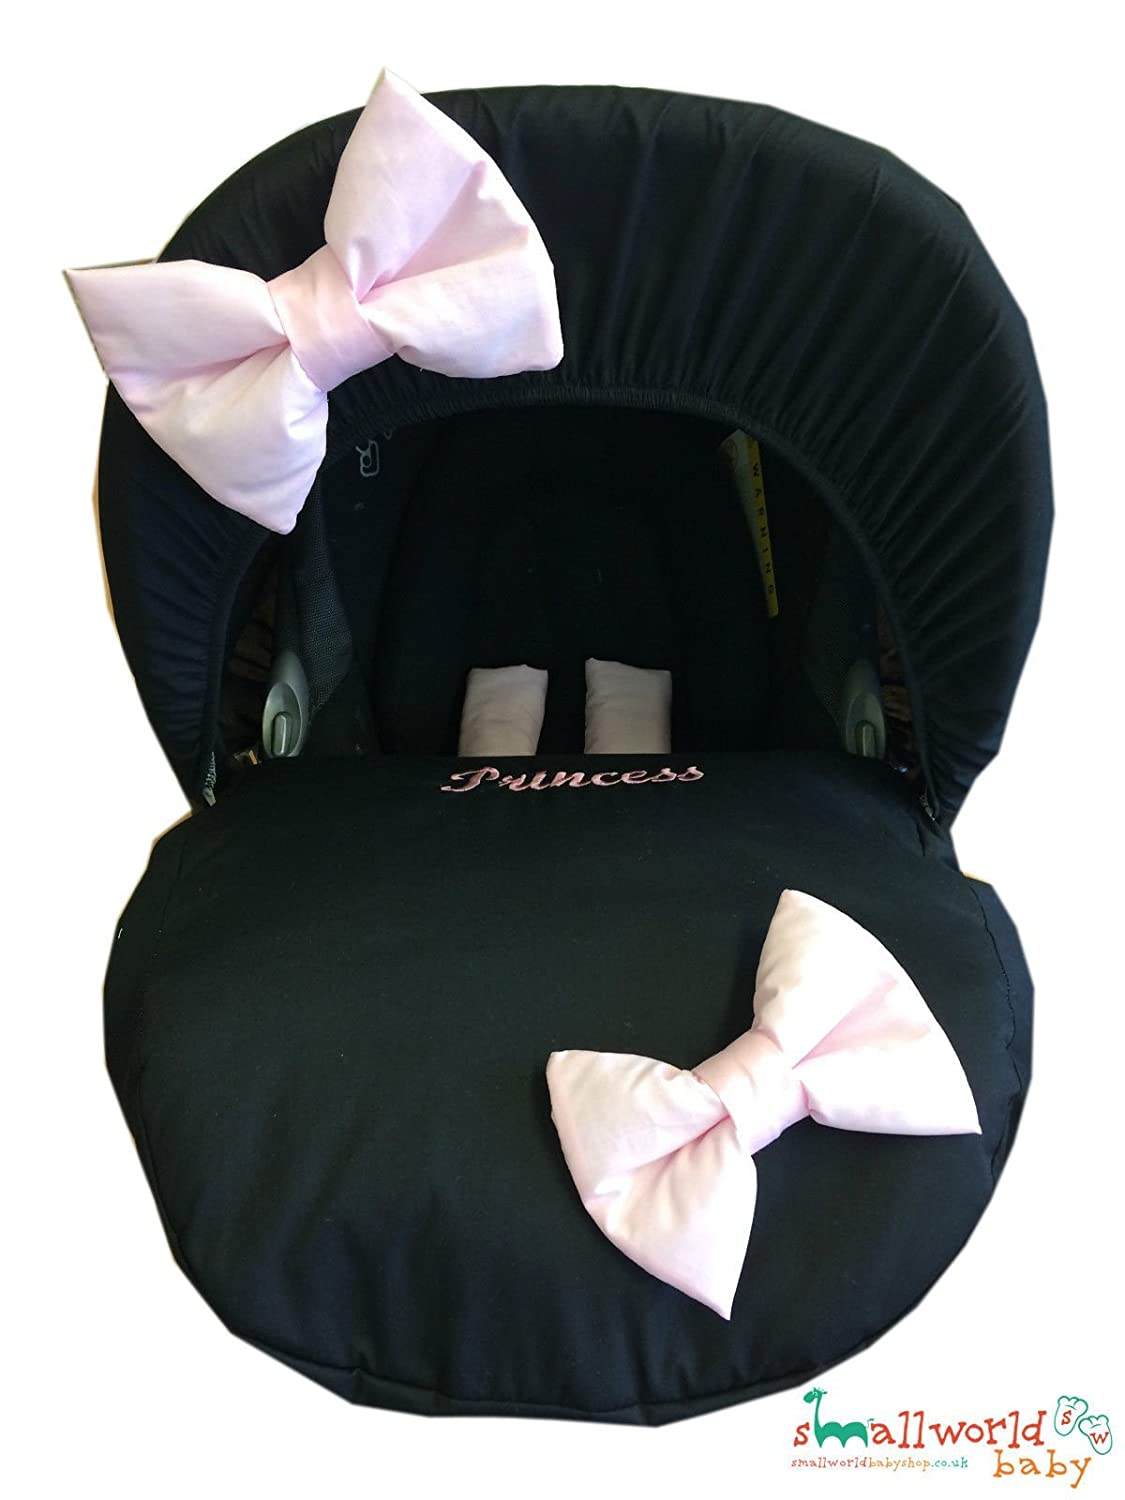 Personalised Black With Pink Bow Baby Car Seat Cover Small World Baby Shop